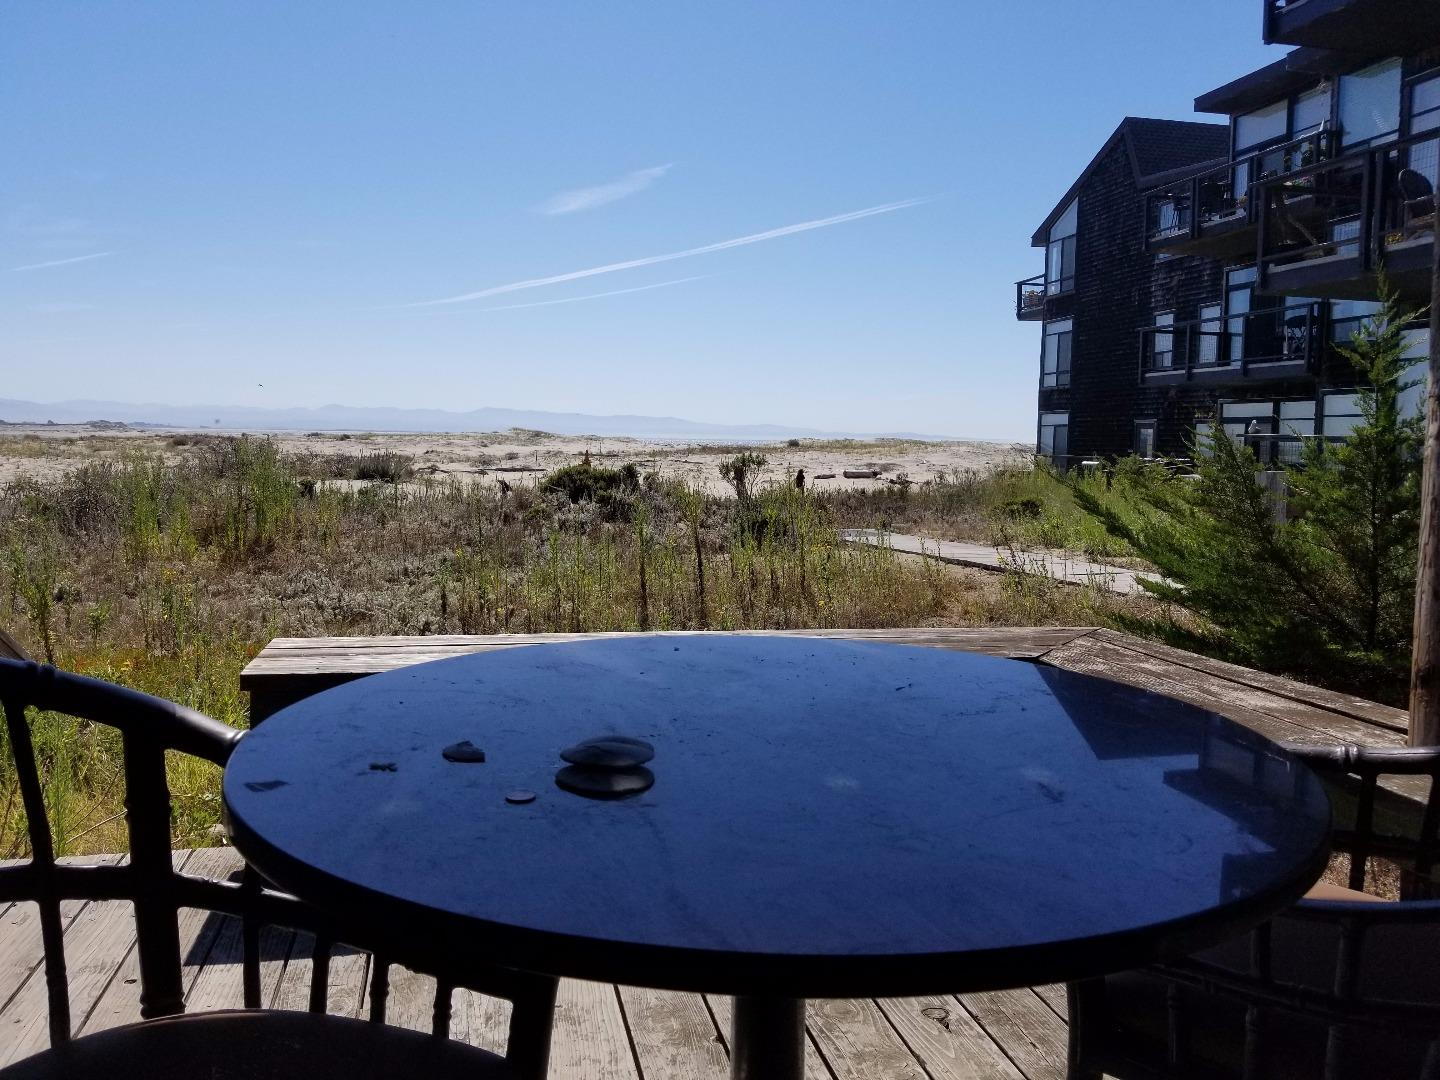 Additional photo for property listing at 73 Pelican Point 73 Pelican Point La Selva Beach, California 95076 Estados Unidos